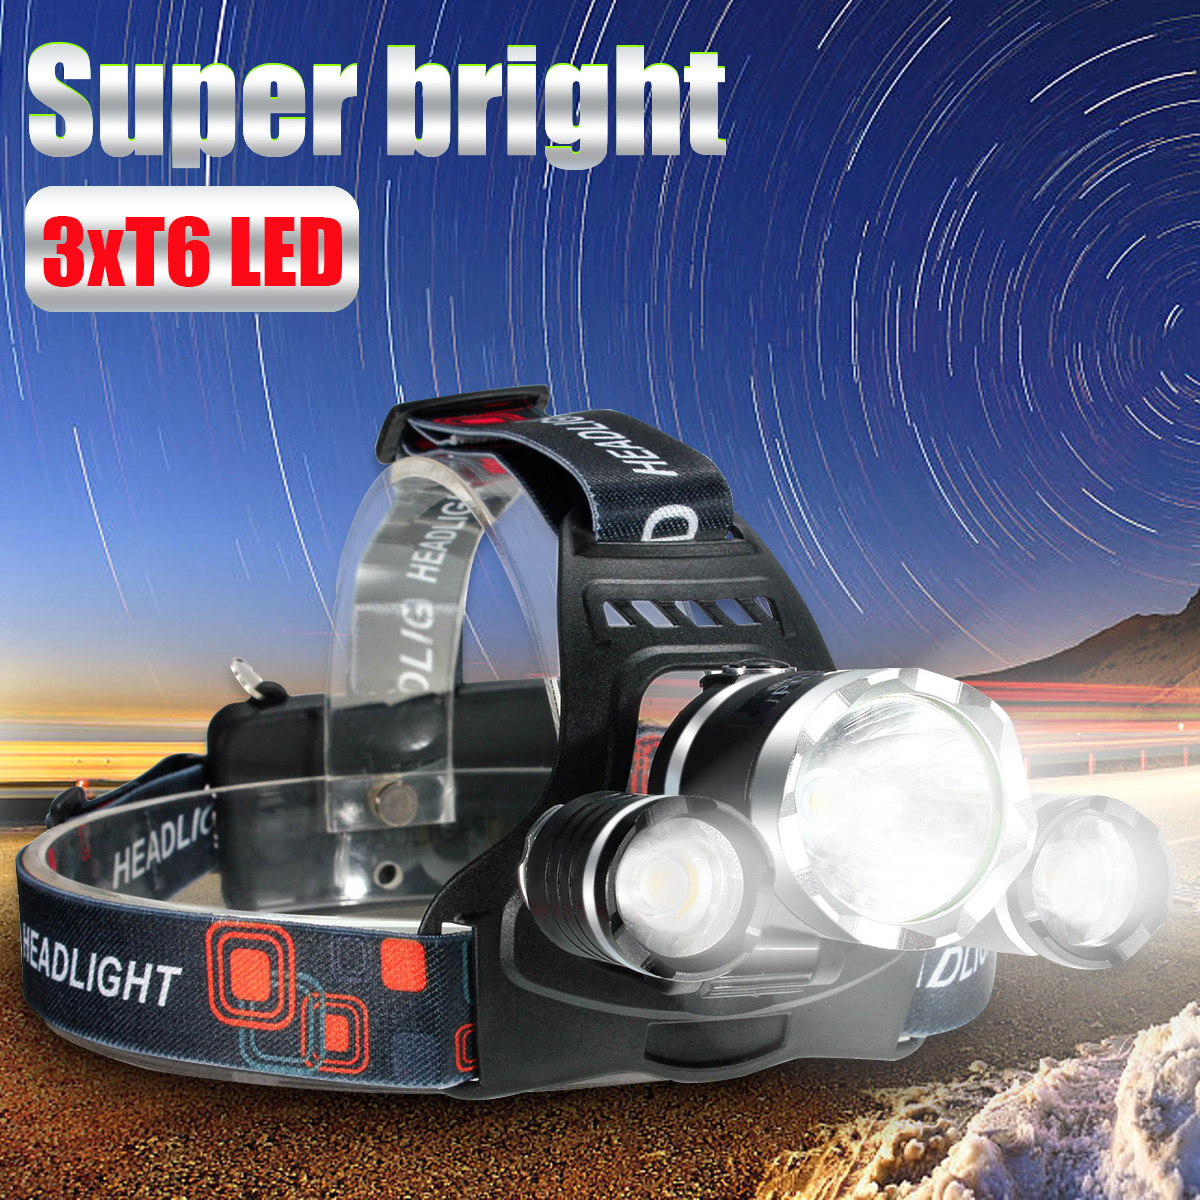 4500 Lumens 3x T6 LED Rechargeable Headlight Headlamp Flashlight Torch Waterproof 4Modes For Camping Fishing (Just Headlamps)